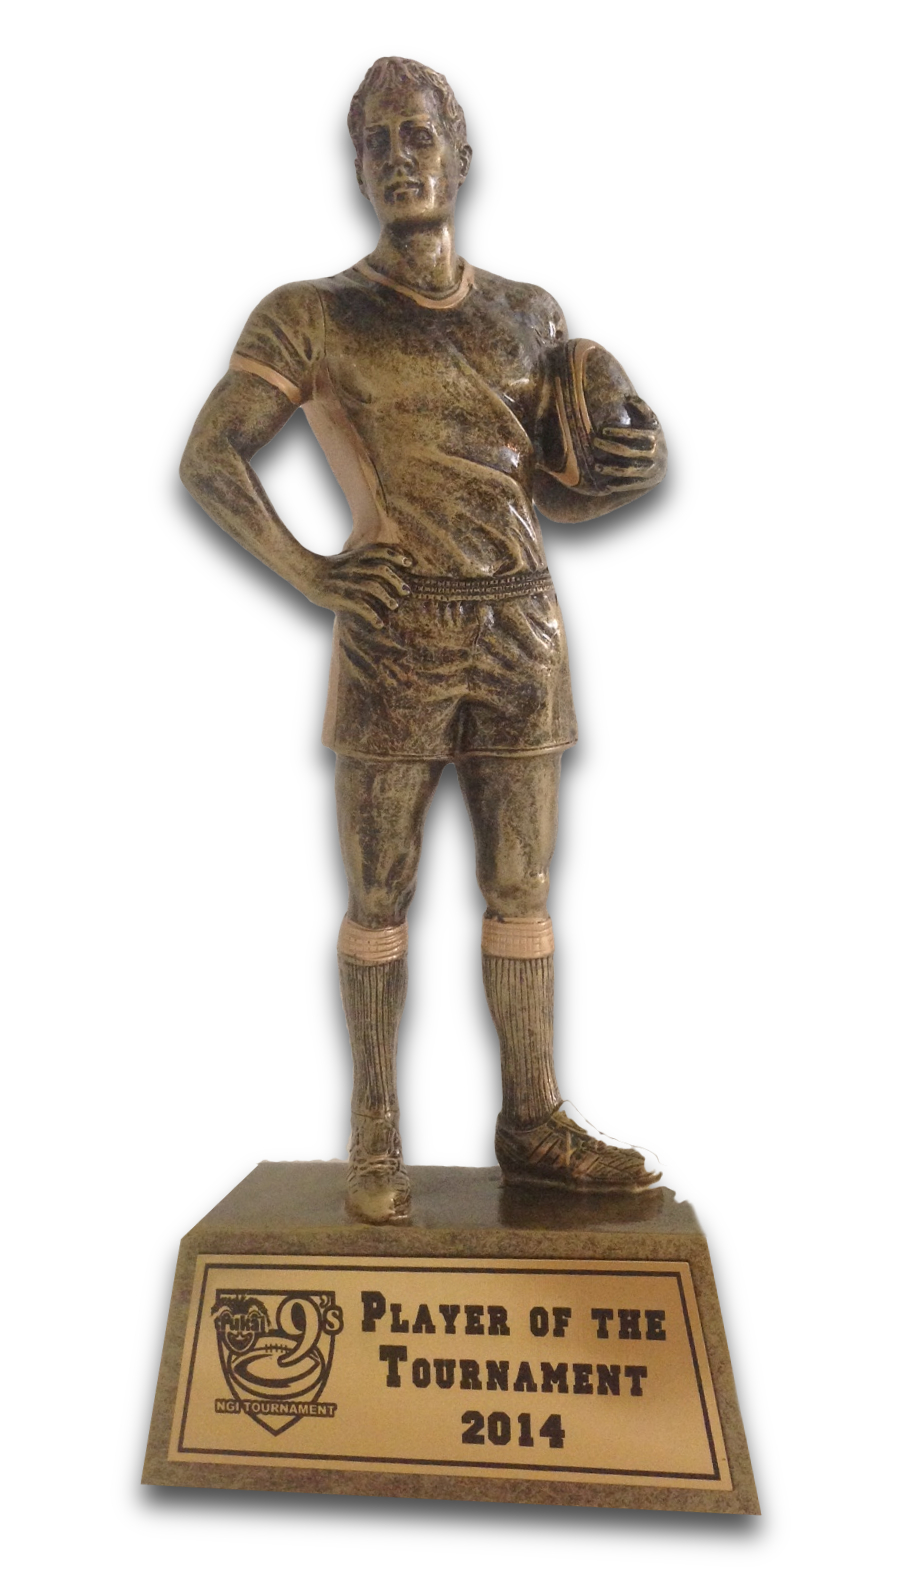 AGMARK 9's Rugby Player of Tournament (JPG).jpg